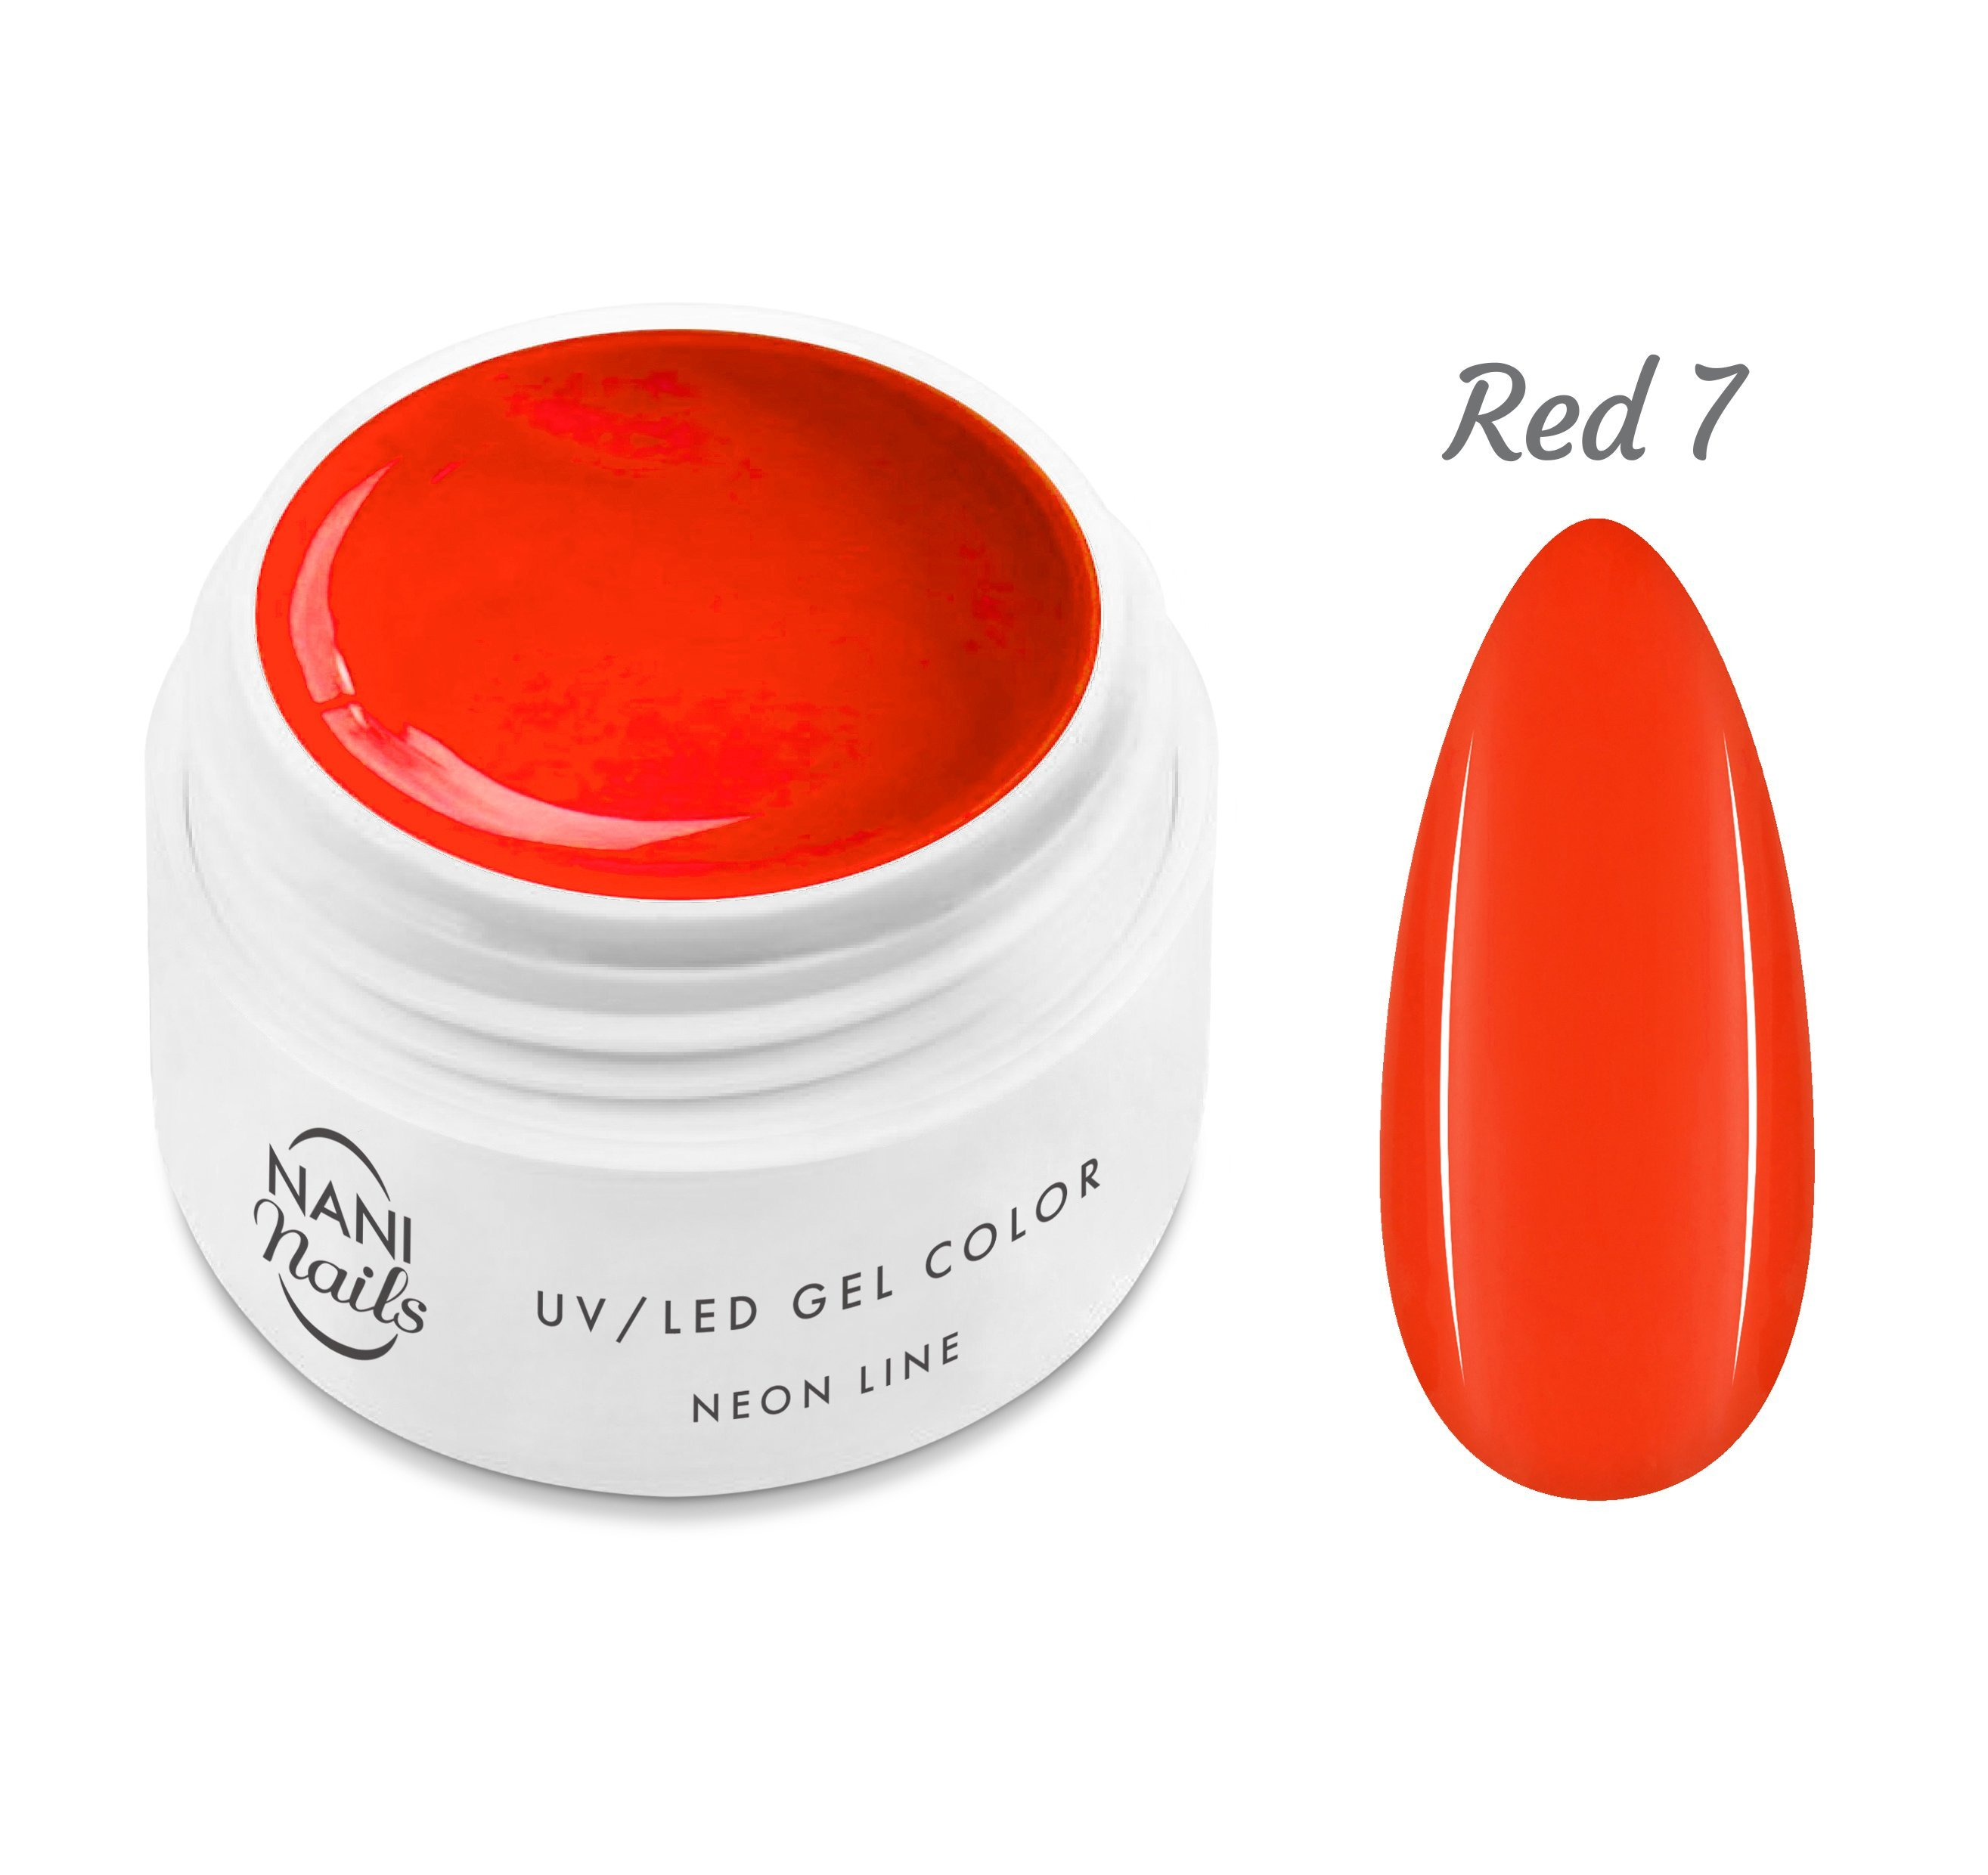 NANI UV gél Neon Line 5 ml - Red